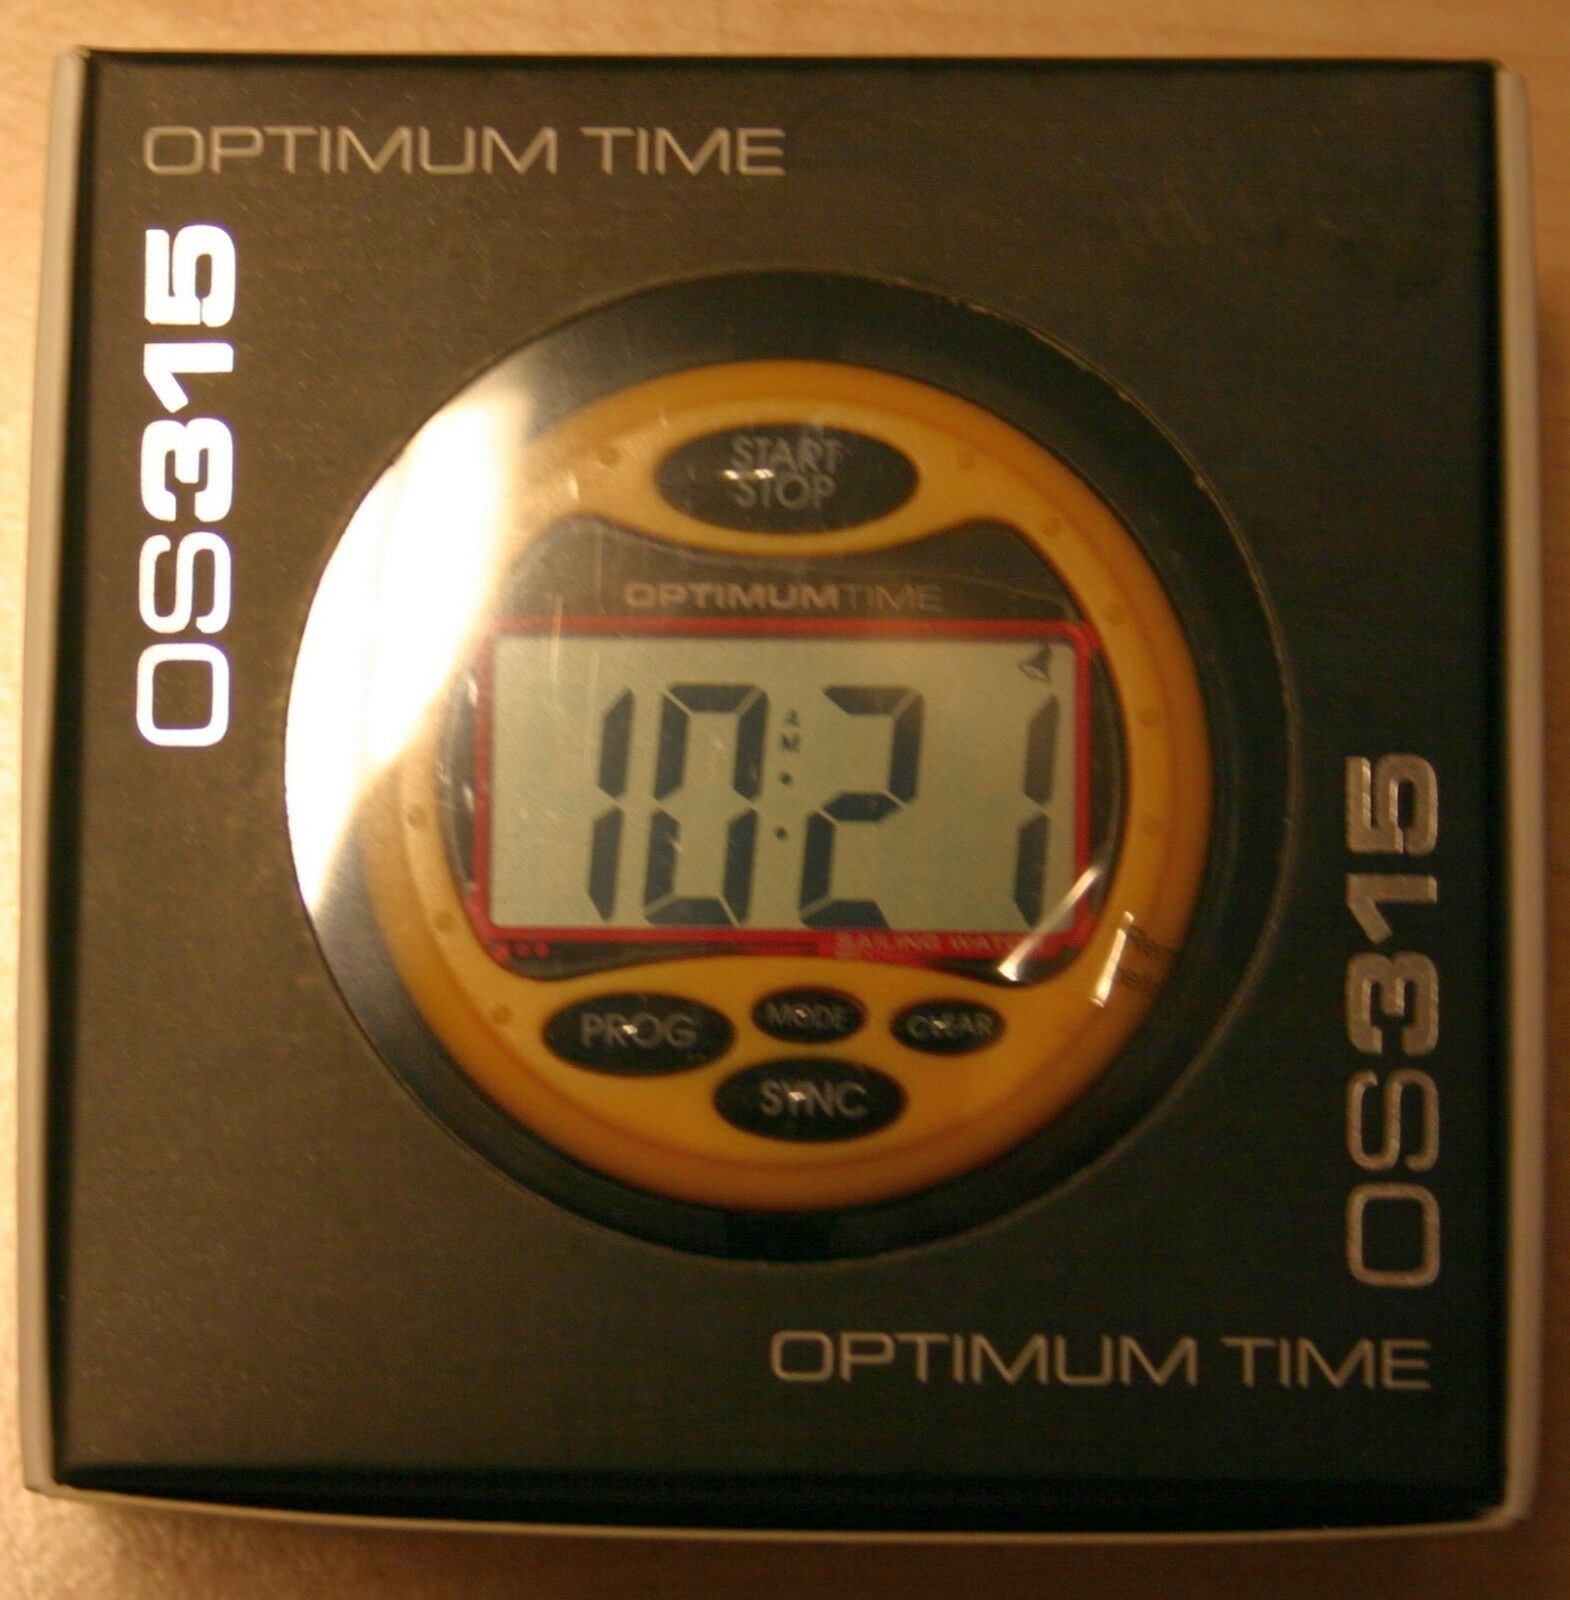 Regattauhr Time Optimum Time Regattauhr OS315 Jumbo Gelb 59420e